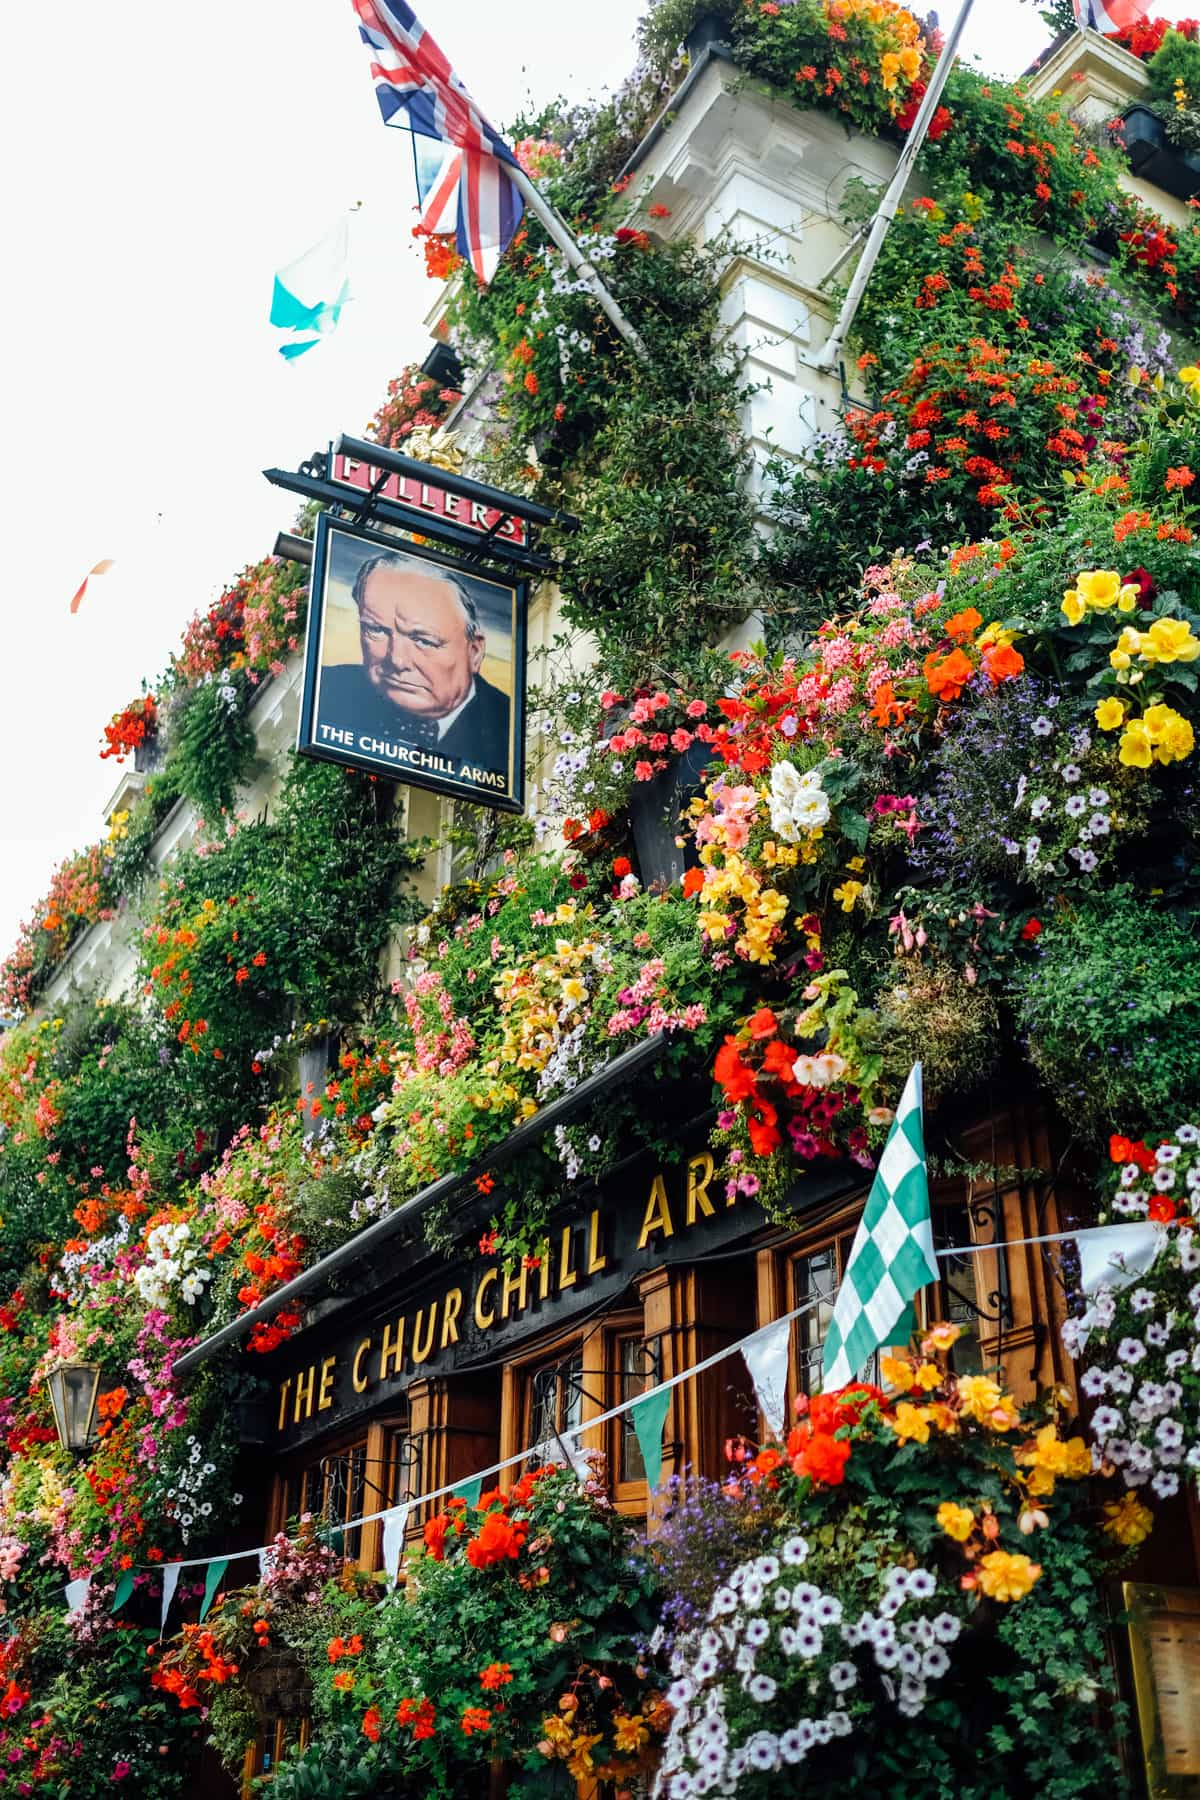 So in love with the flower wall of Churchill arms in London! Photos of Our British Isles Cruise with Family! | Part 1 # travel #familytravel #cruise #decor #design #britishisles